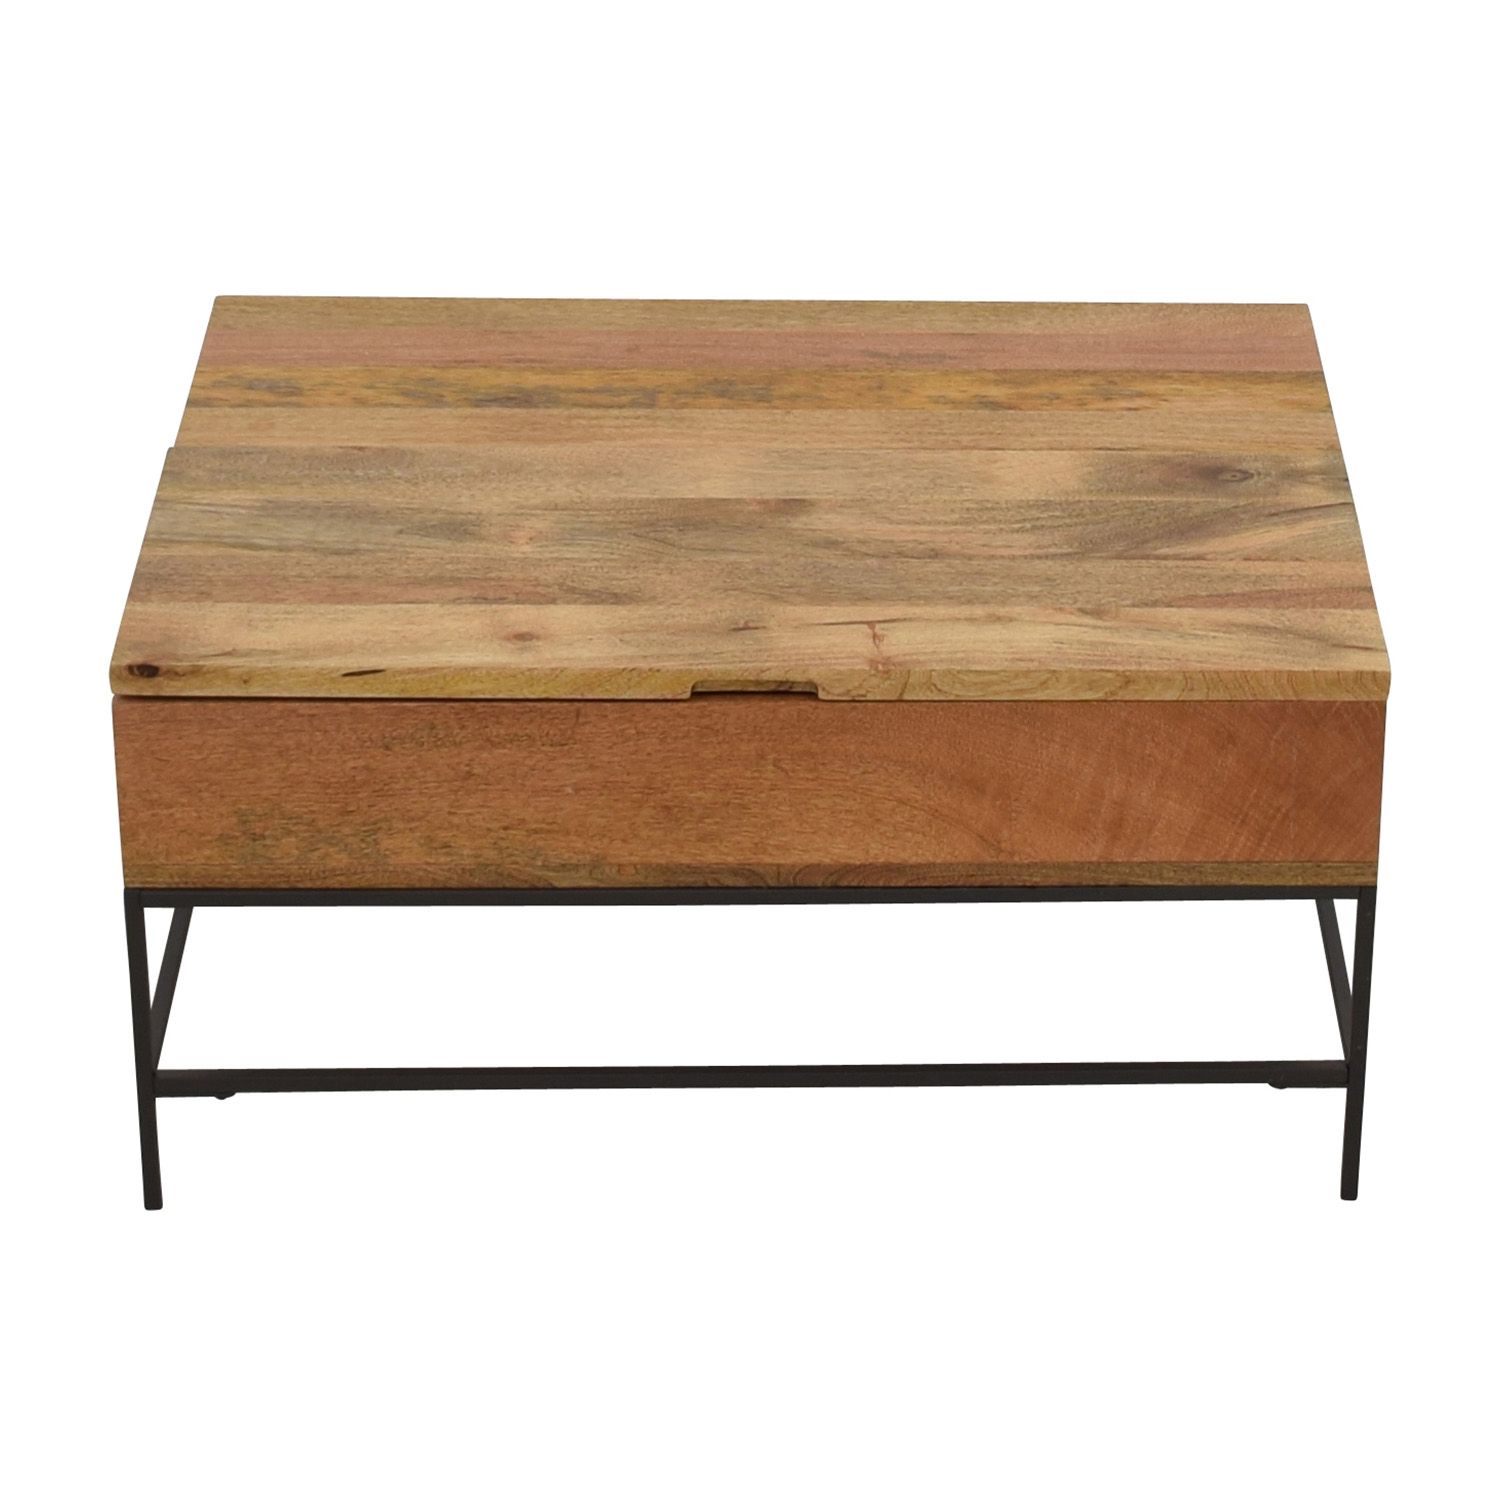 West Elm Industrial Storage Coffee Table / Coffee Tables